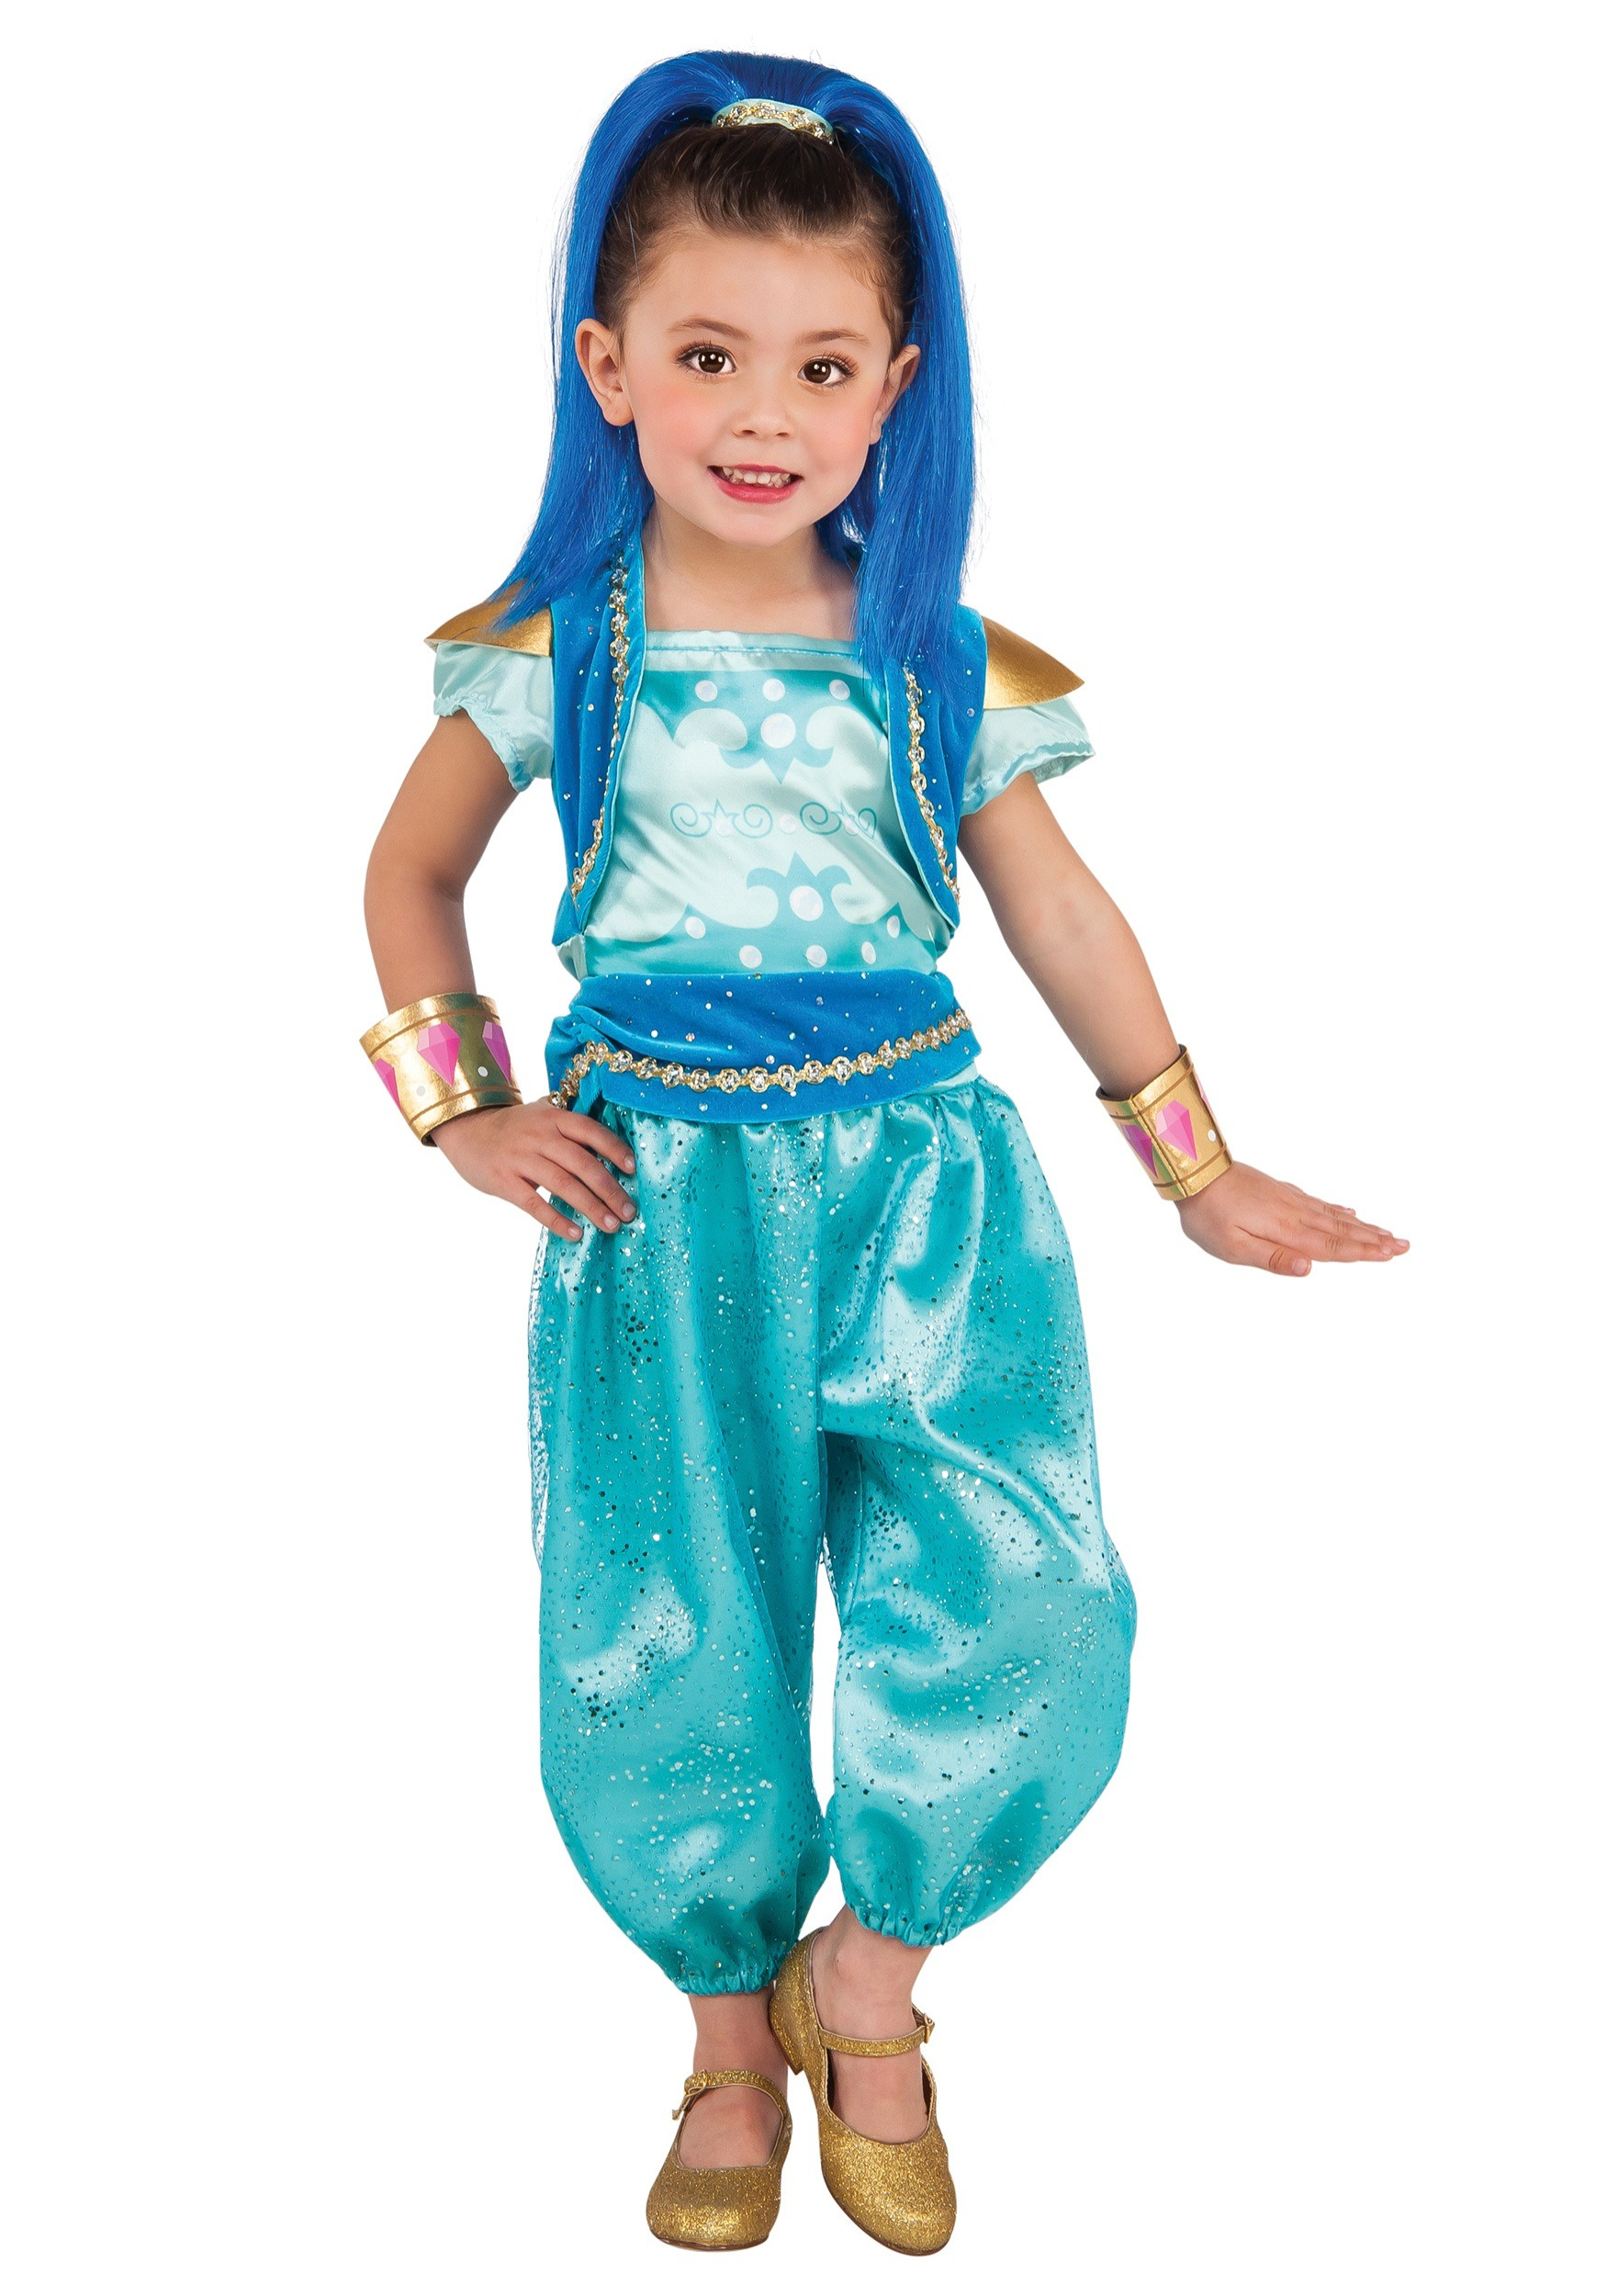 Girls Deluxe Shine Costume  sc 1 st  Halloween Costumes & Shimmer and Shine Costumes - HalloweenCostumes.com